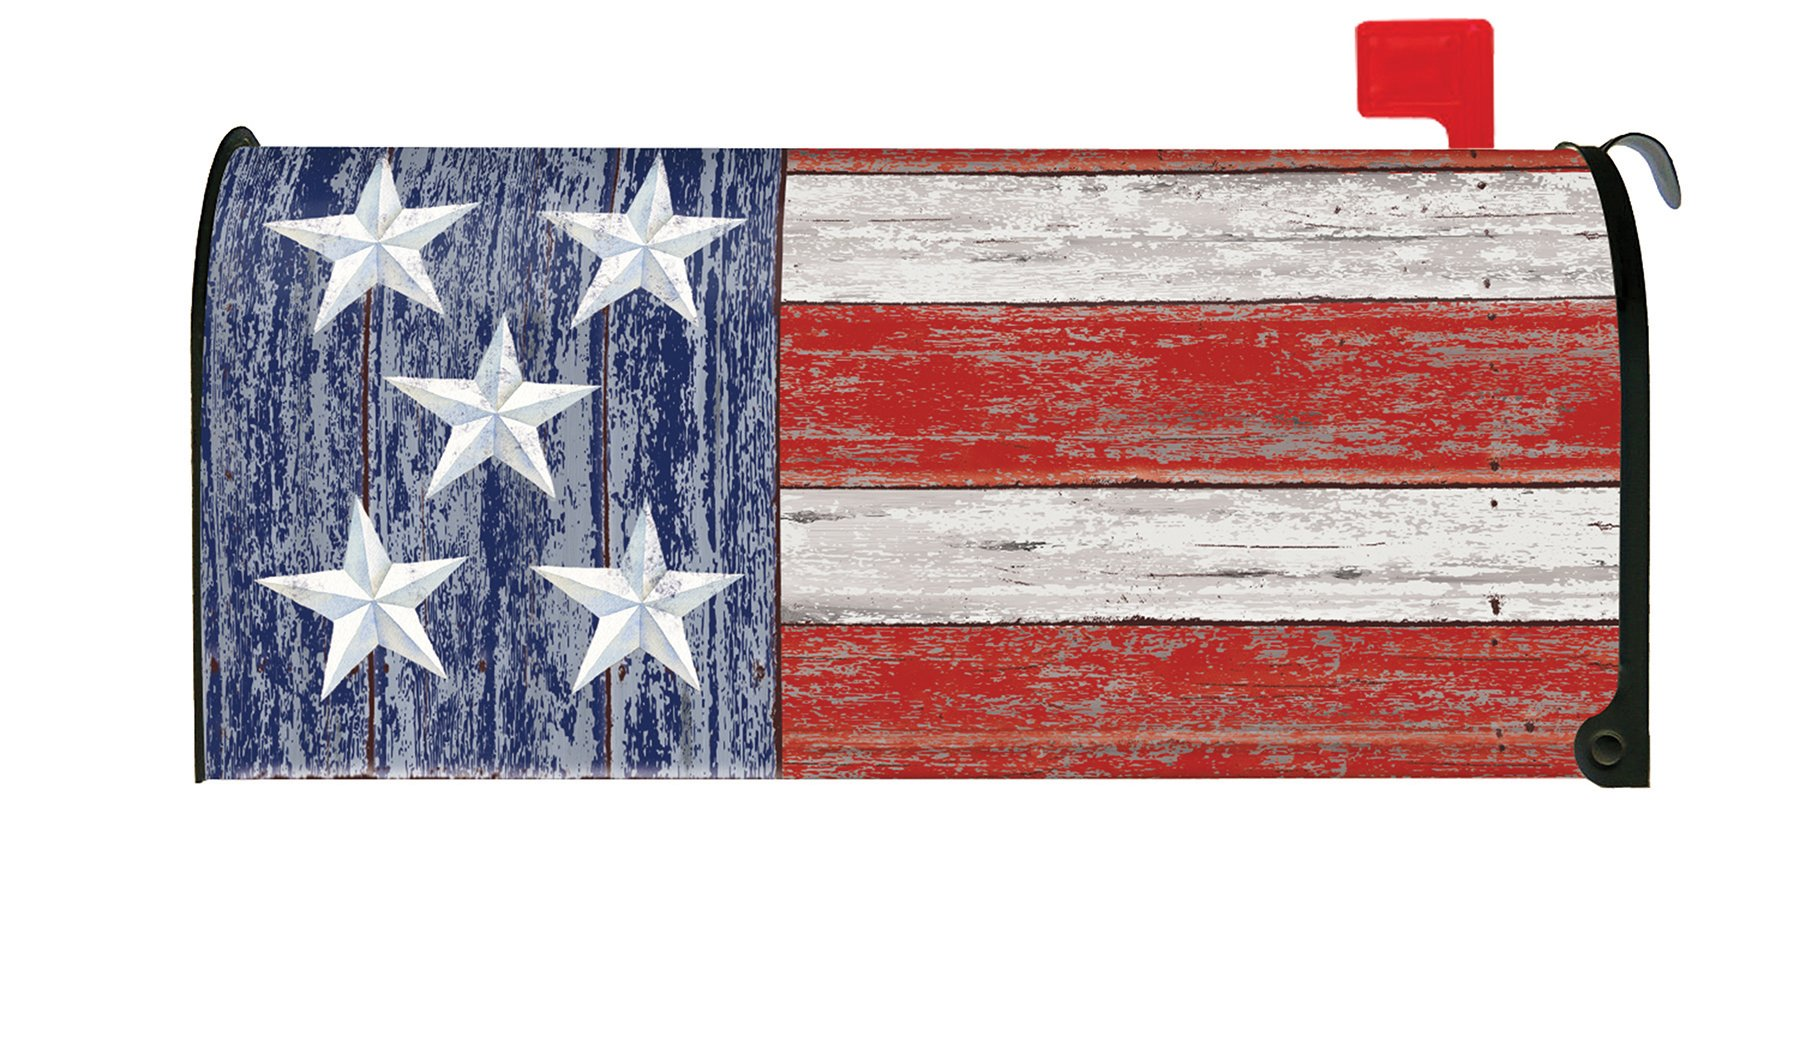 Toland Home Garden Rustic Patriotic USA Stars Stripes 4th July Magnetic Mailbox Cover by Toland Home Garden (Image #1)